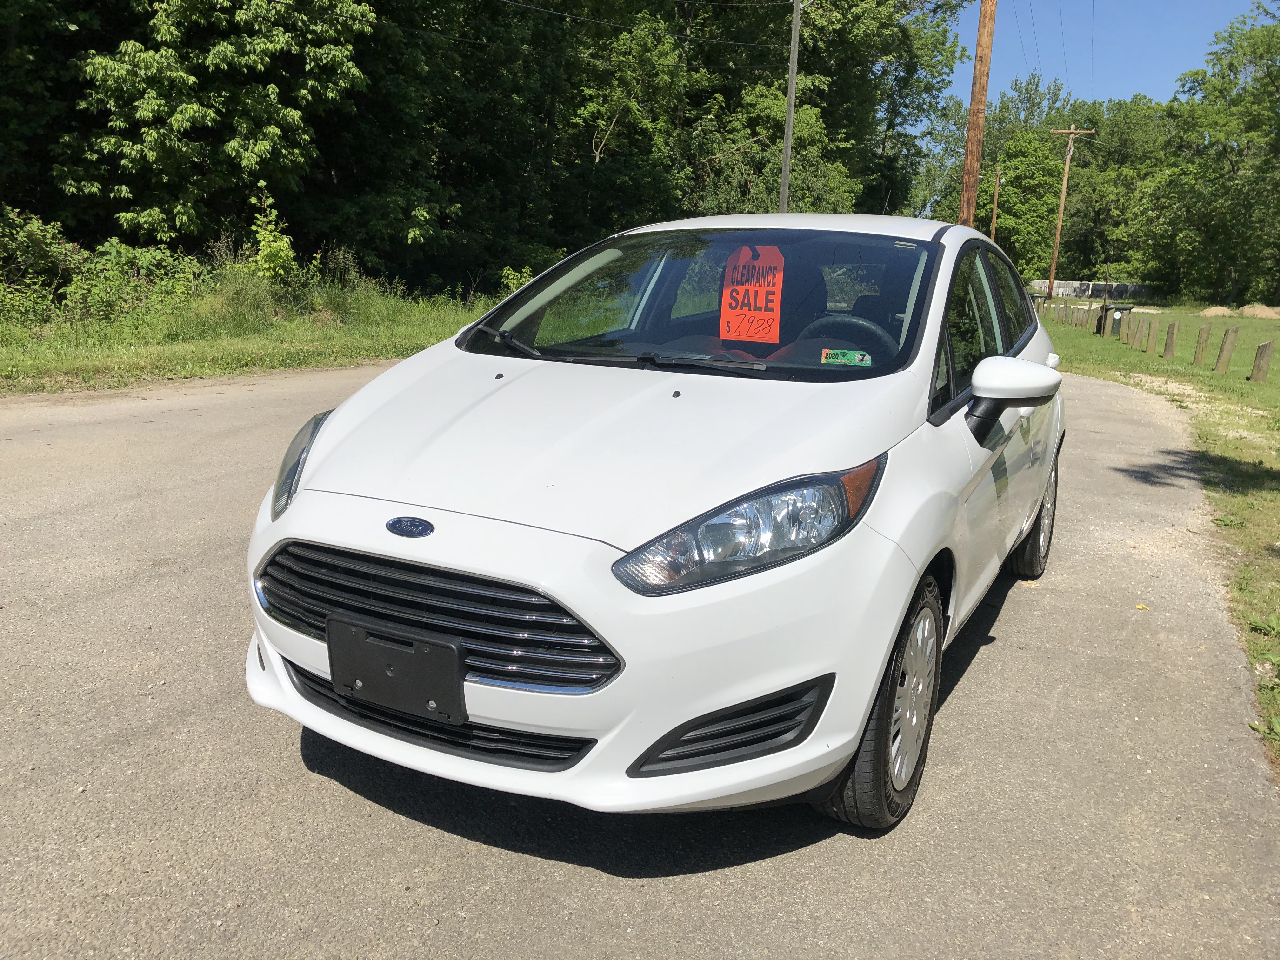 Ford Fiesta 5dr HB S 2015